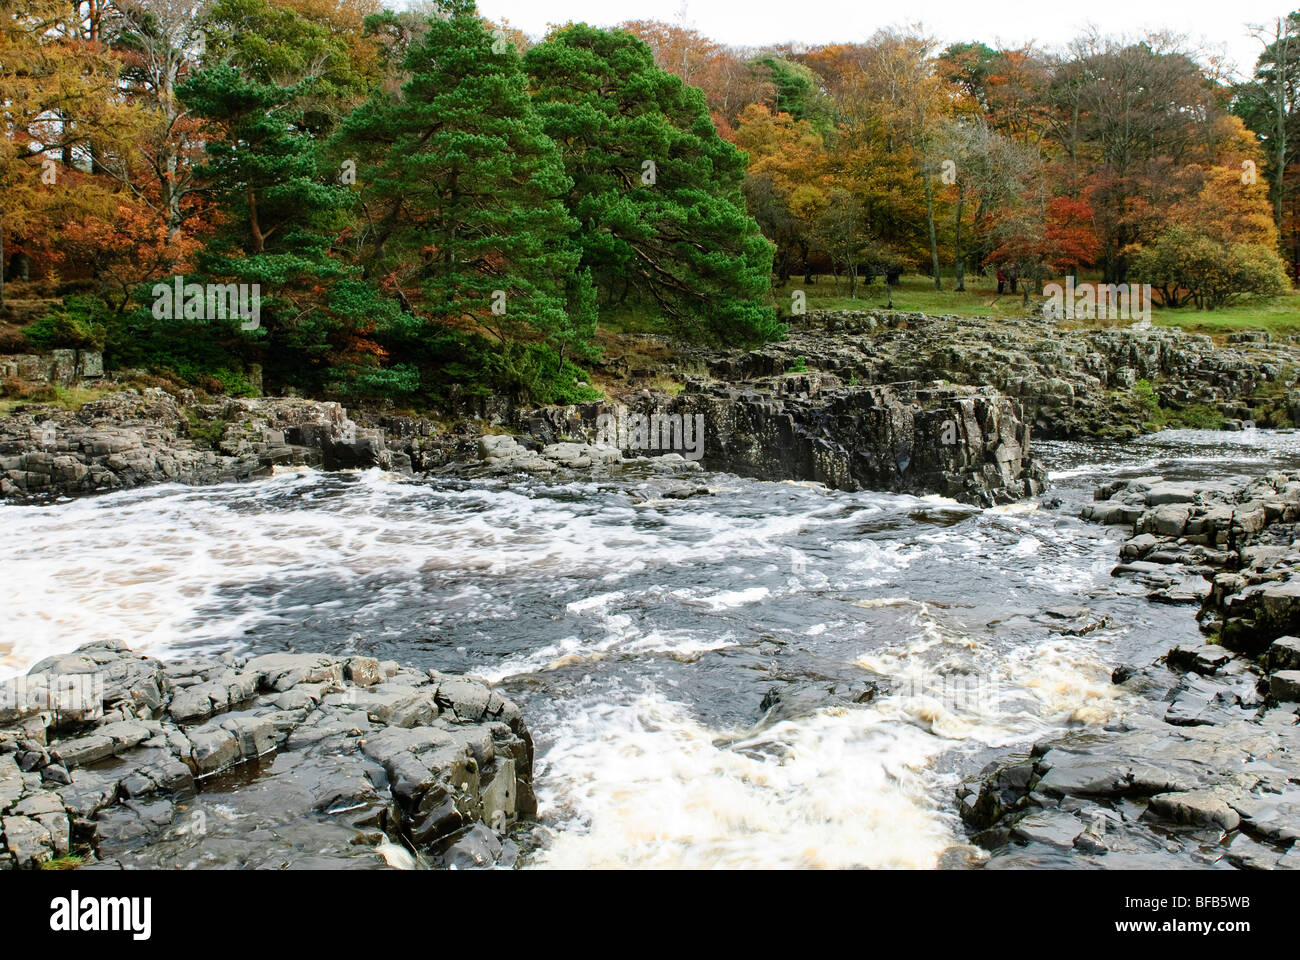 Low Force Waterfall, Upper Teesdale - Stock Image